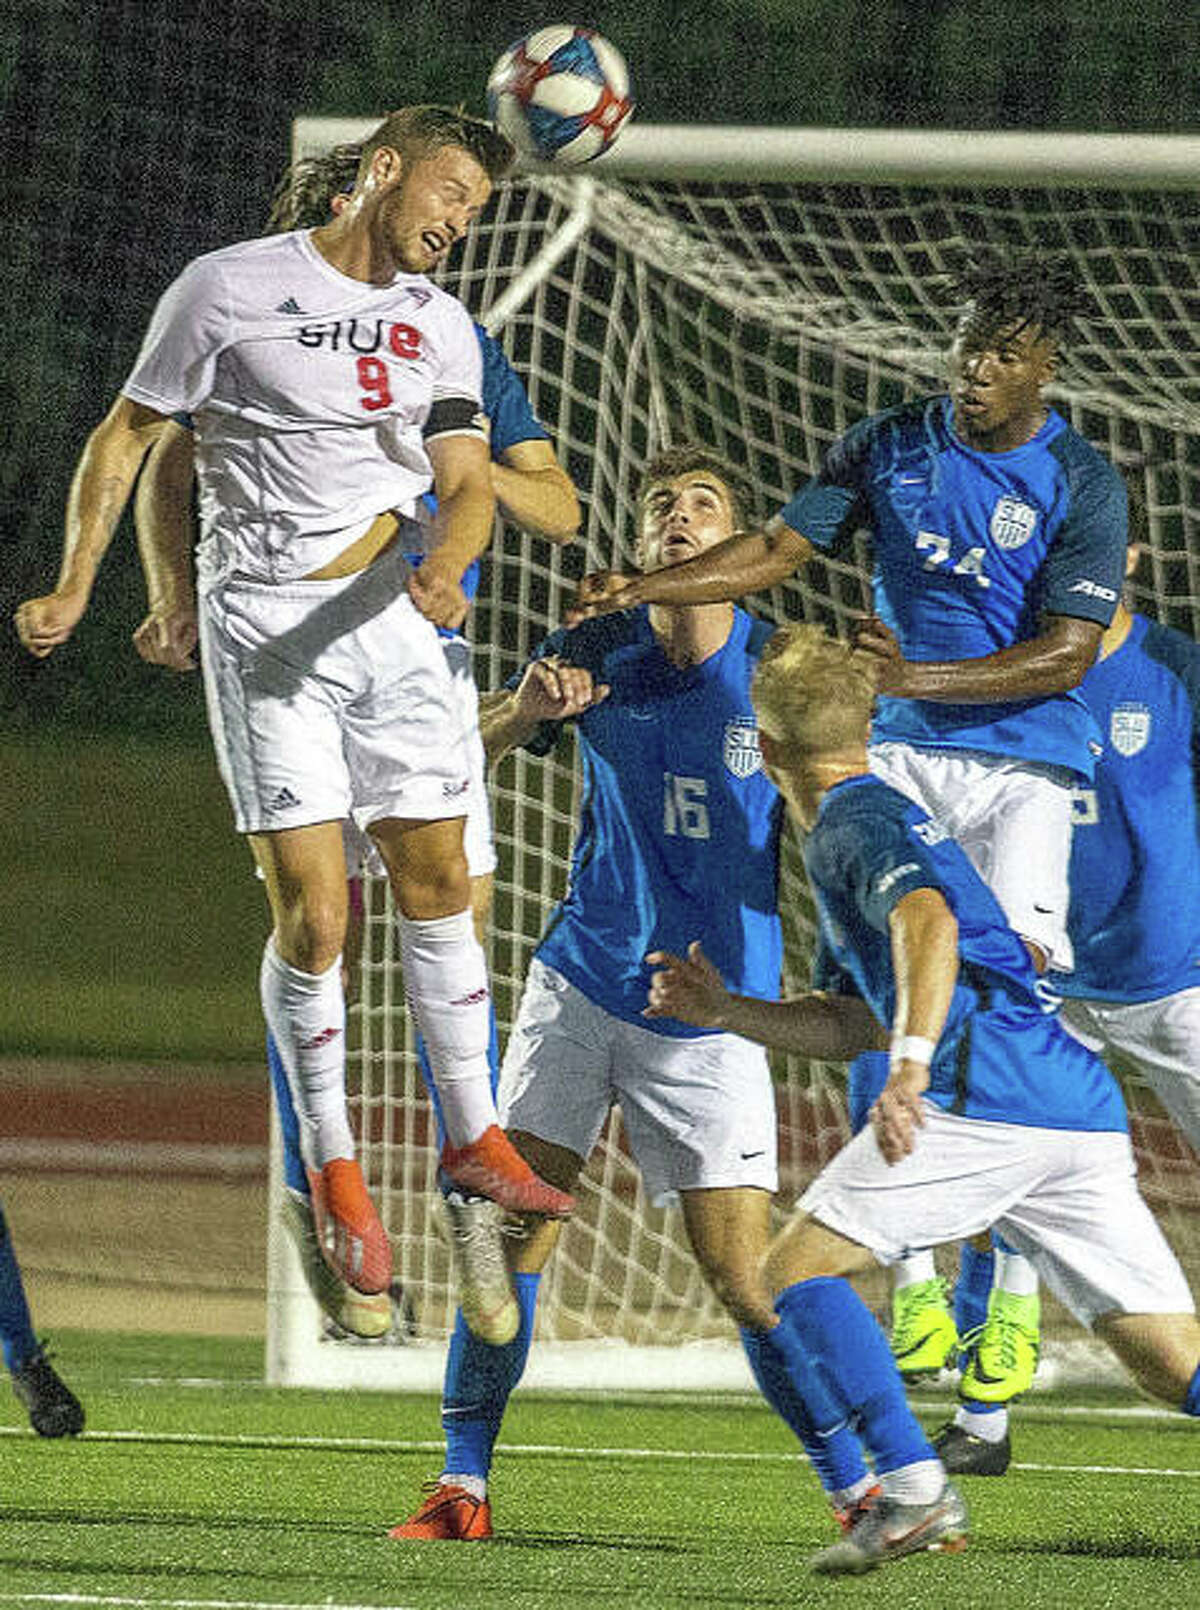 Lachlan McLean of SIUE (9) heads the ball against Saint Louis University in the 2019 Bronze Boot Game at Korte Stadium. Saint Louis U. won in double overtime, 2-1. This year's Bronze Boot game is set for 7 p.m. Tuesday at Saint Louis University.